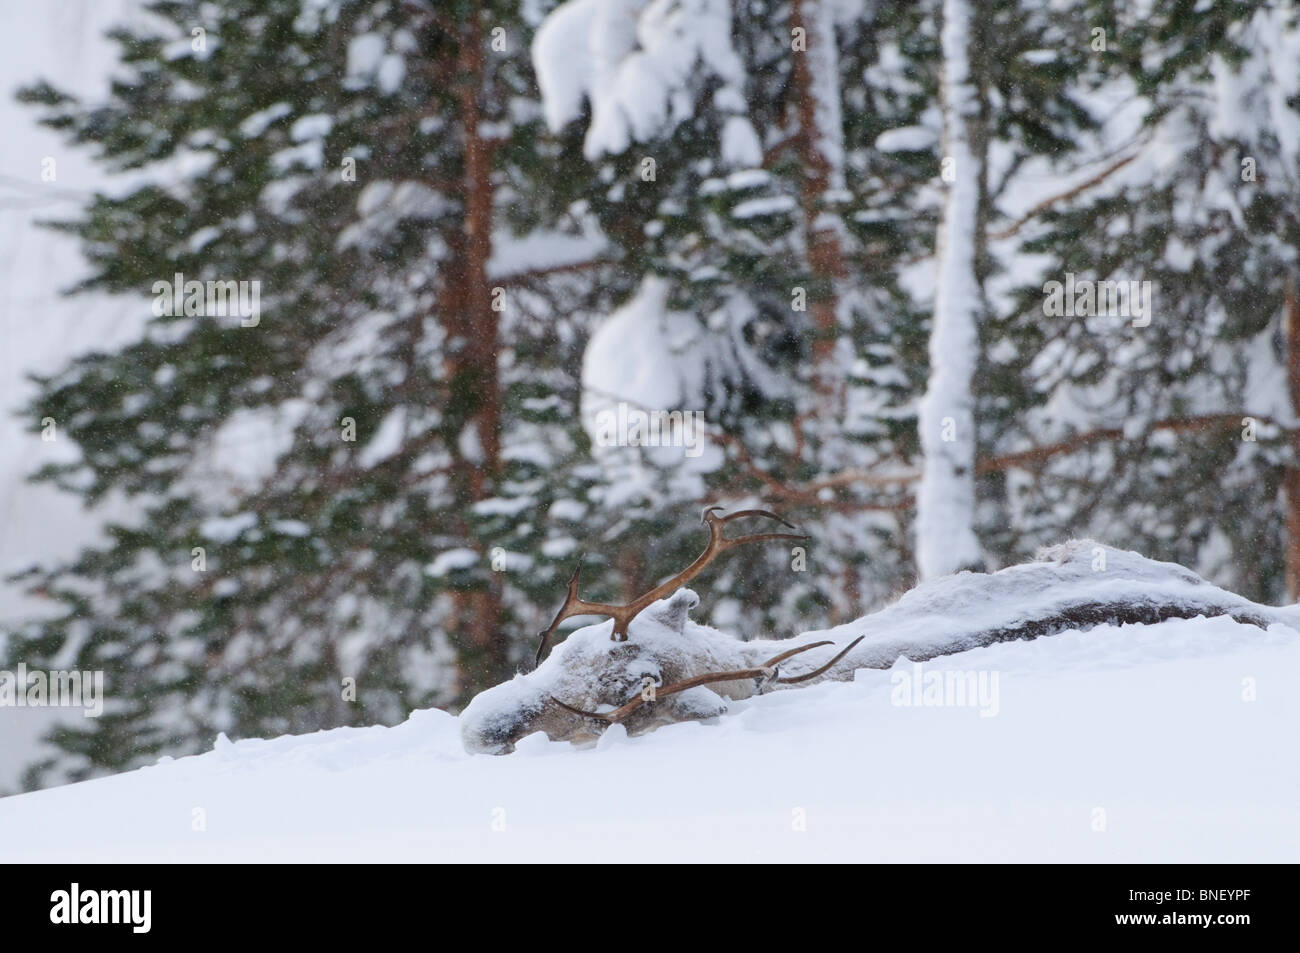 Dead Reindeer carcass under the snow in the boreal forest, Finland - Stock Image